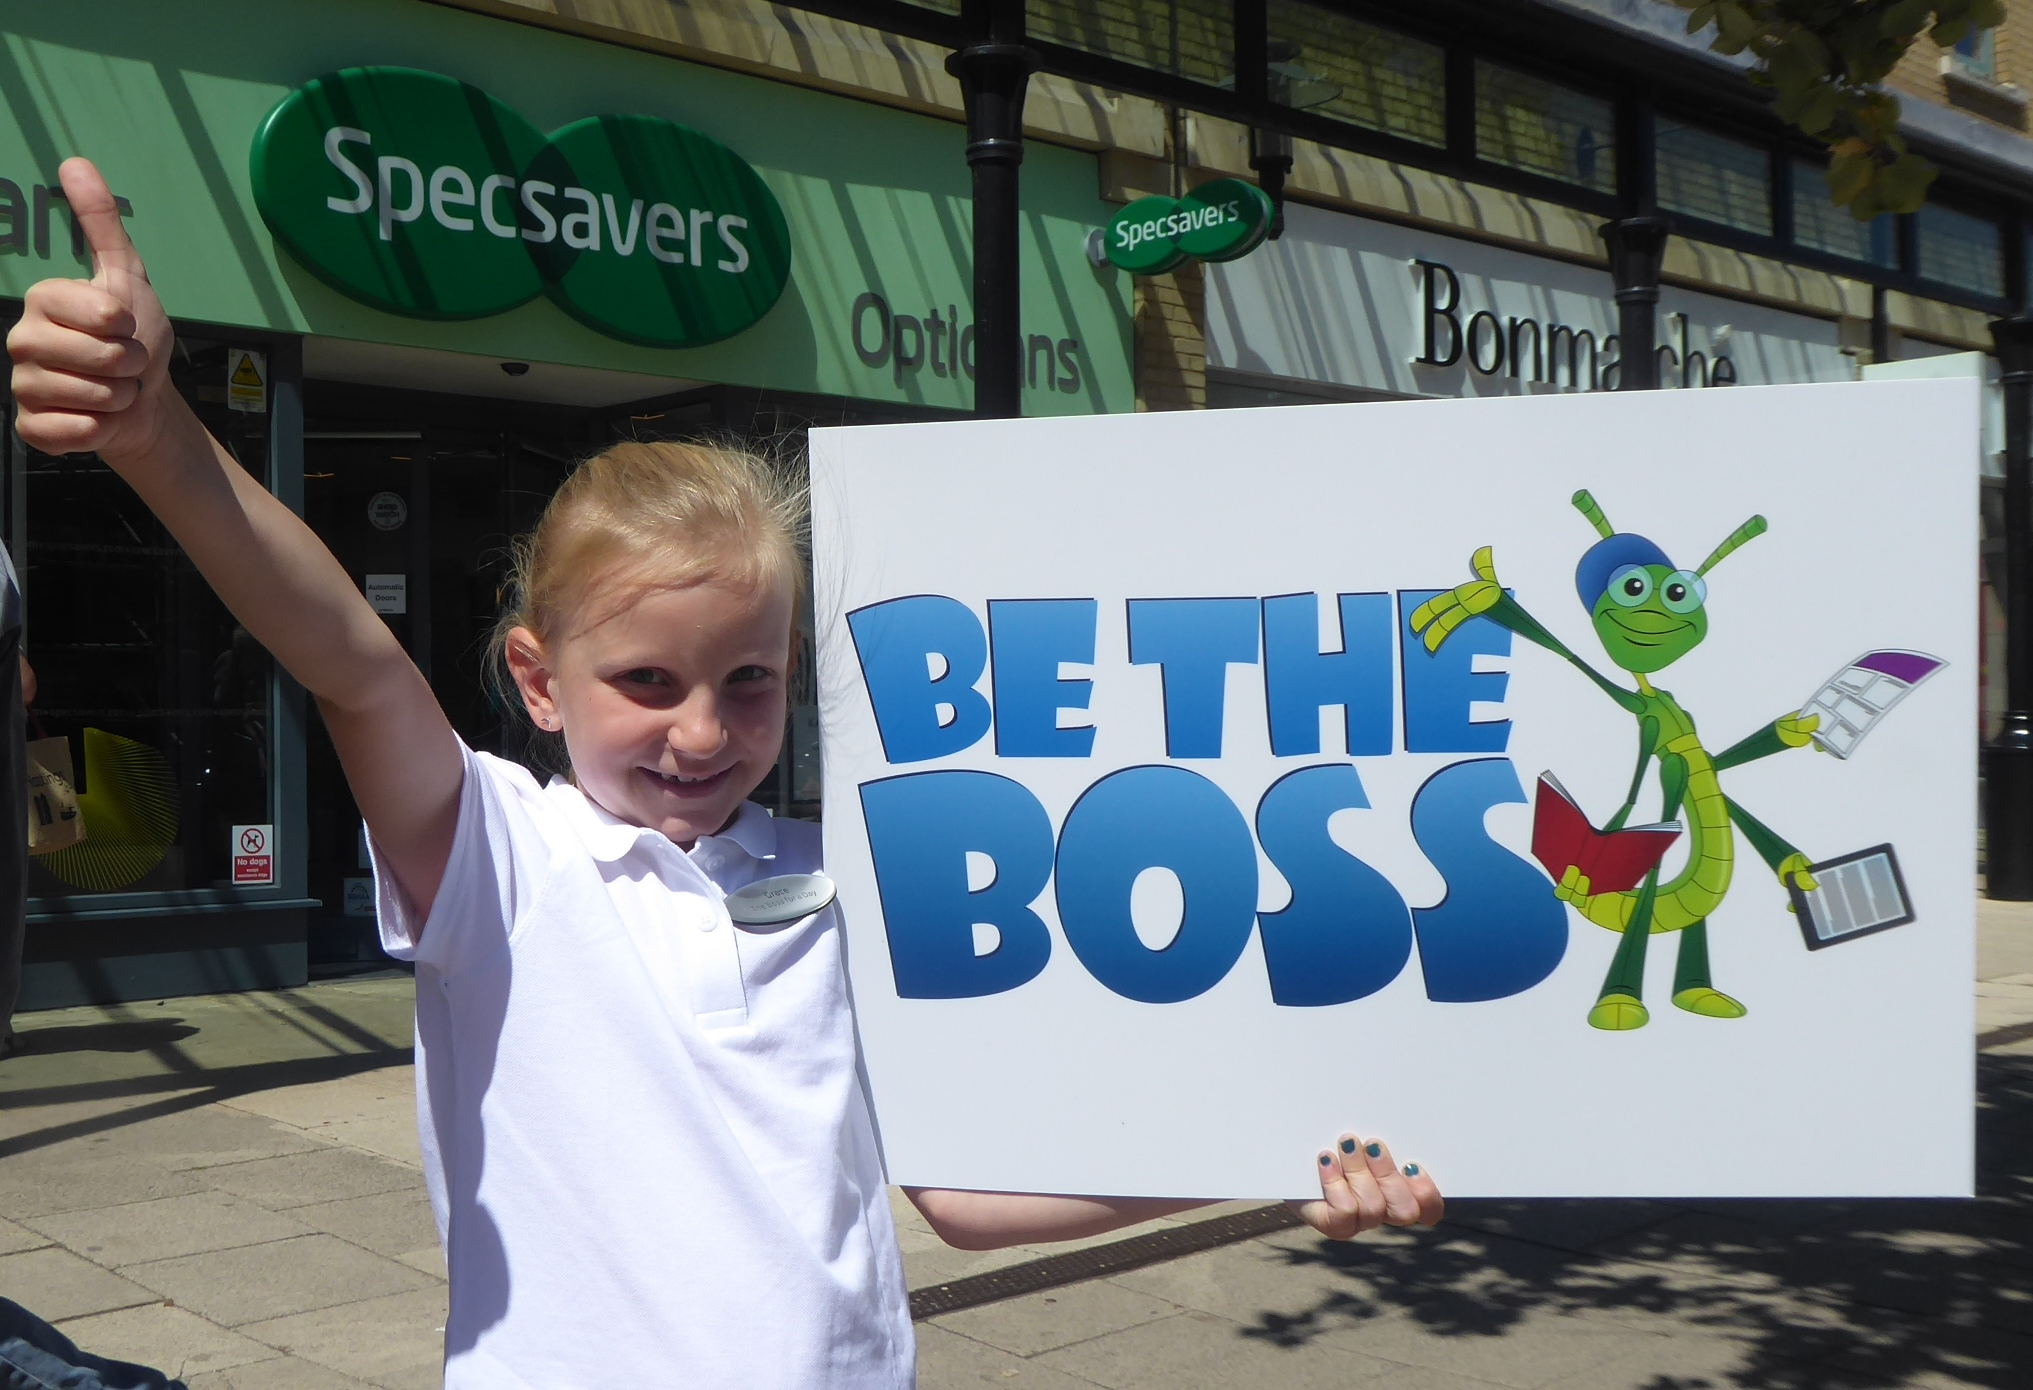 Be the Boss of Specsavers